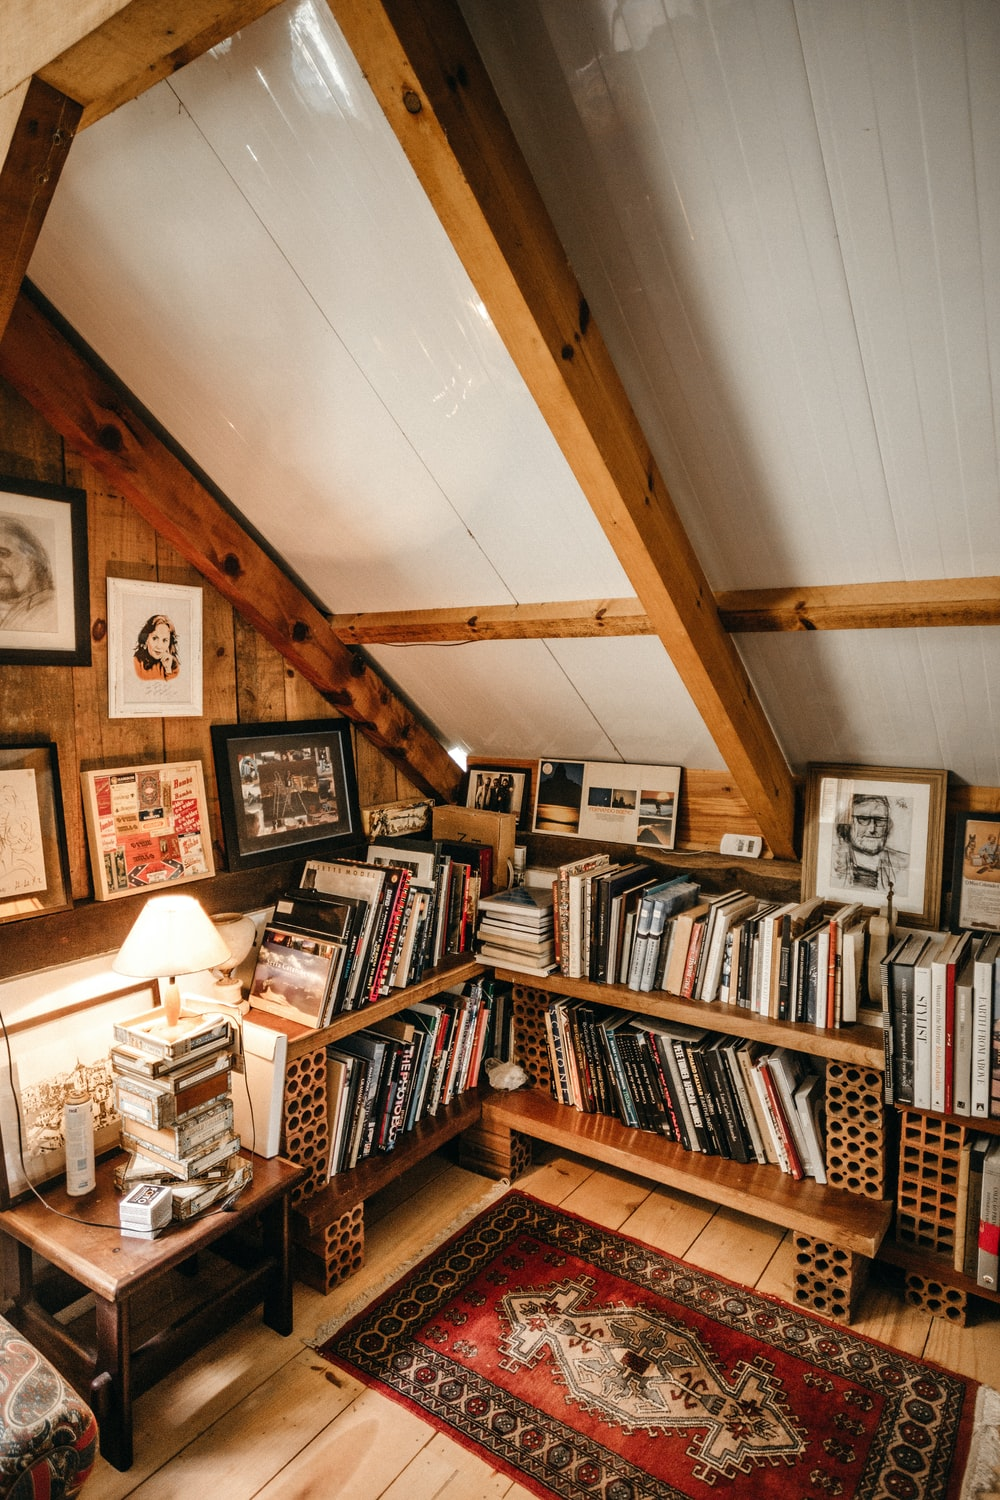 books in bookcase by turned-on table lamp